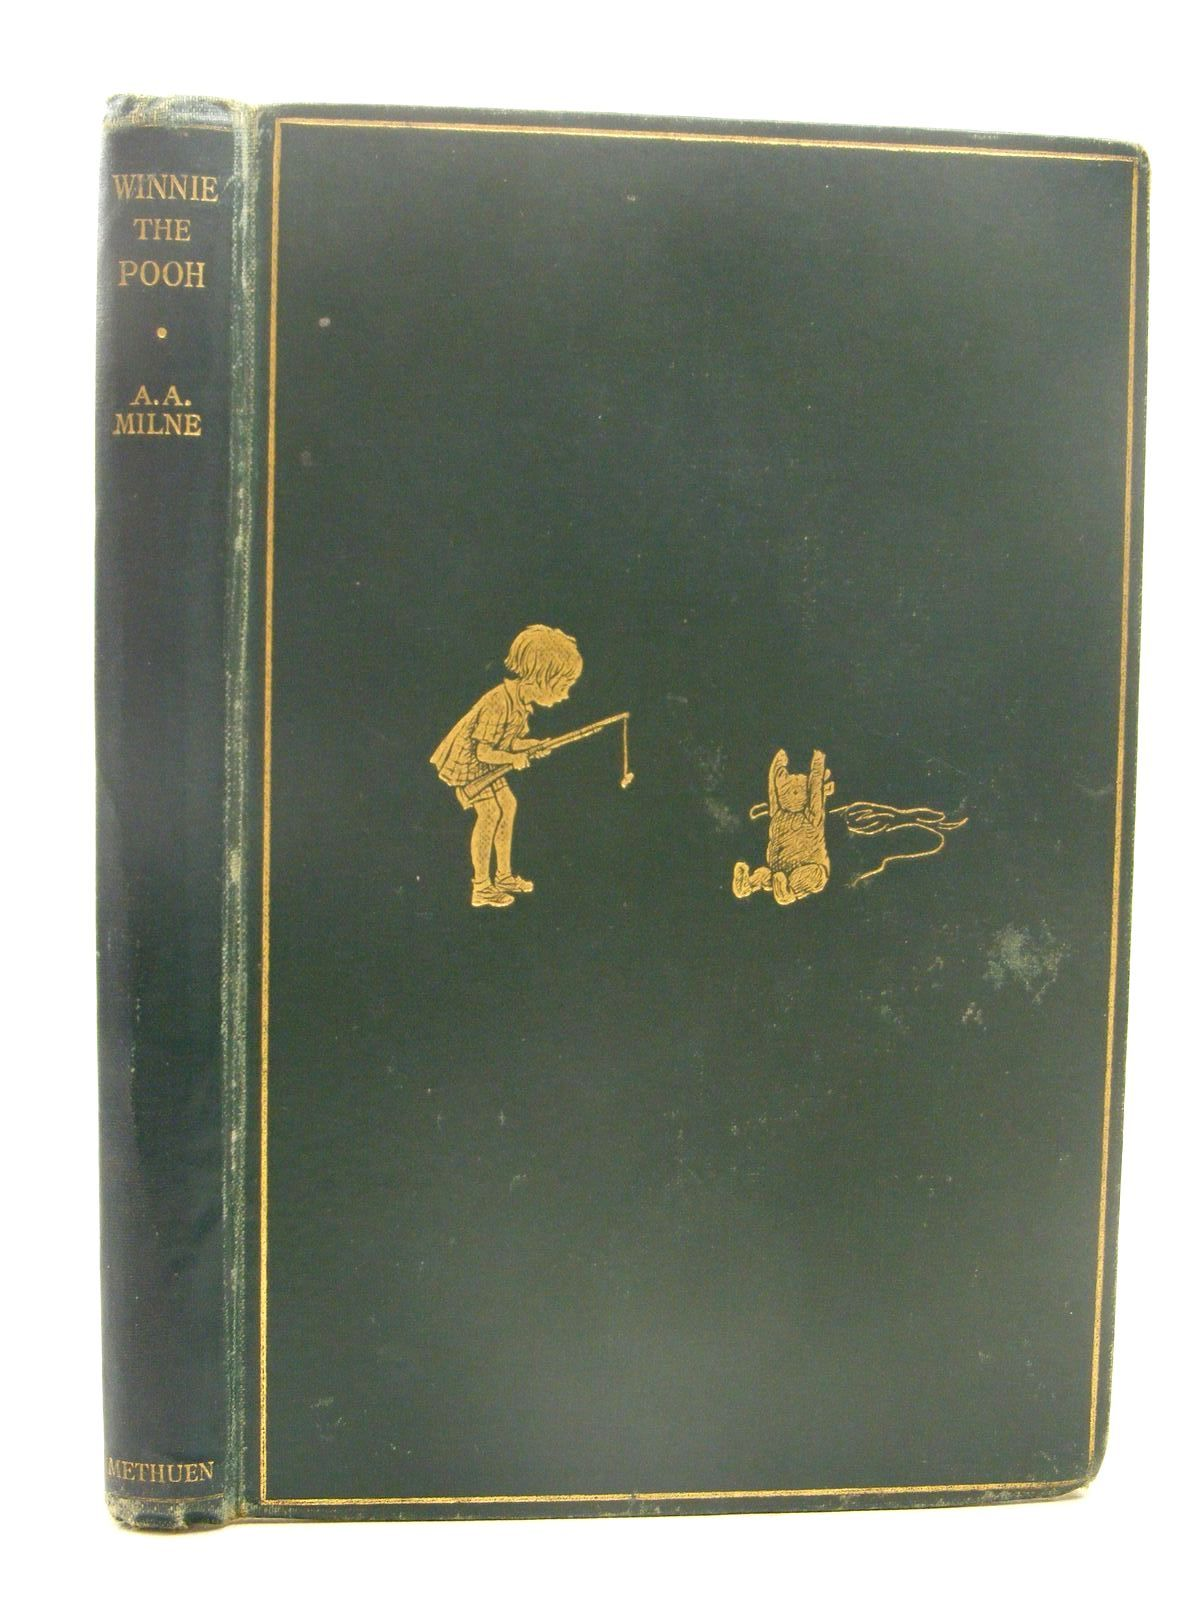 Photo of WINNIE-THE-POOH written by Milne, A.A. illustrated by Shepard, E.H. published by Methuen & Co. Ltd. (STOCK CODE: 2124836)  for sale by Stella & Rose's Books